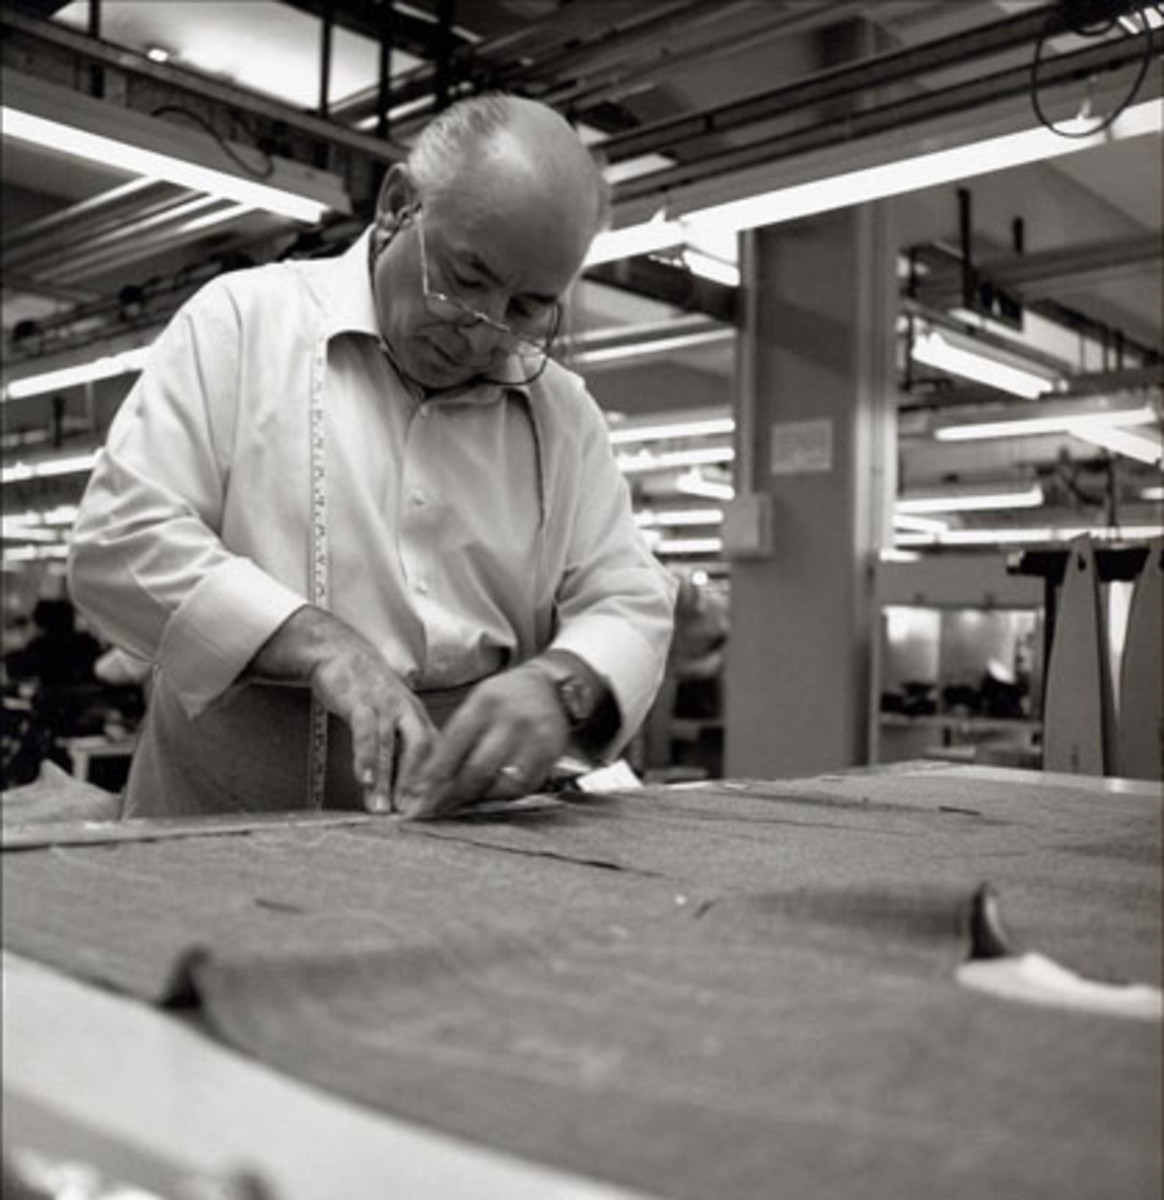 BRIONI TAILOR IN FACTORY